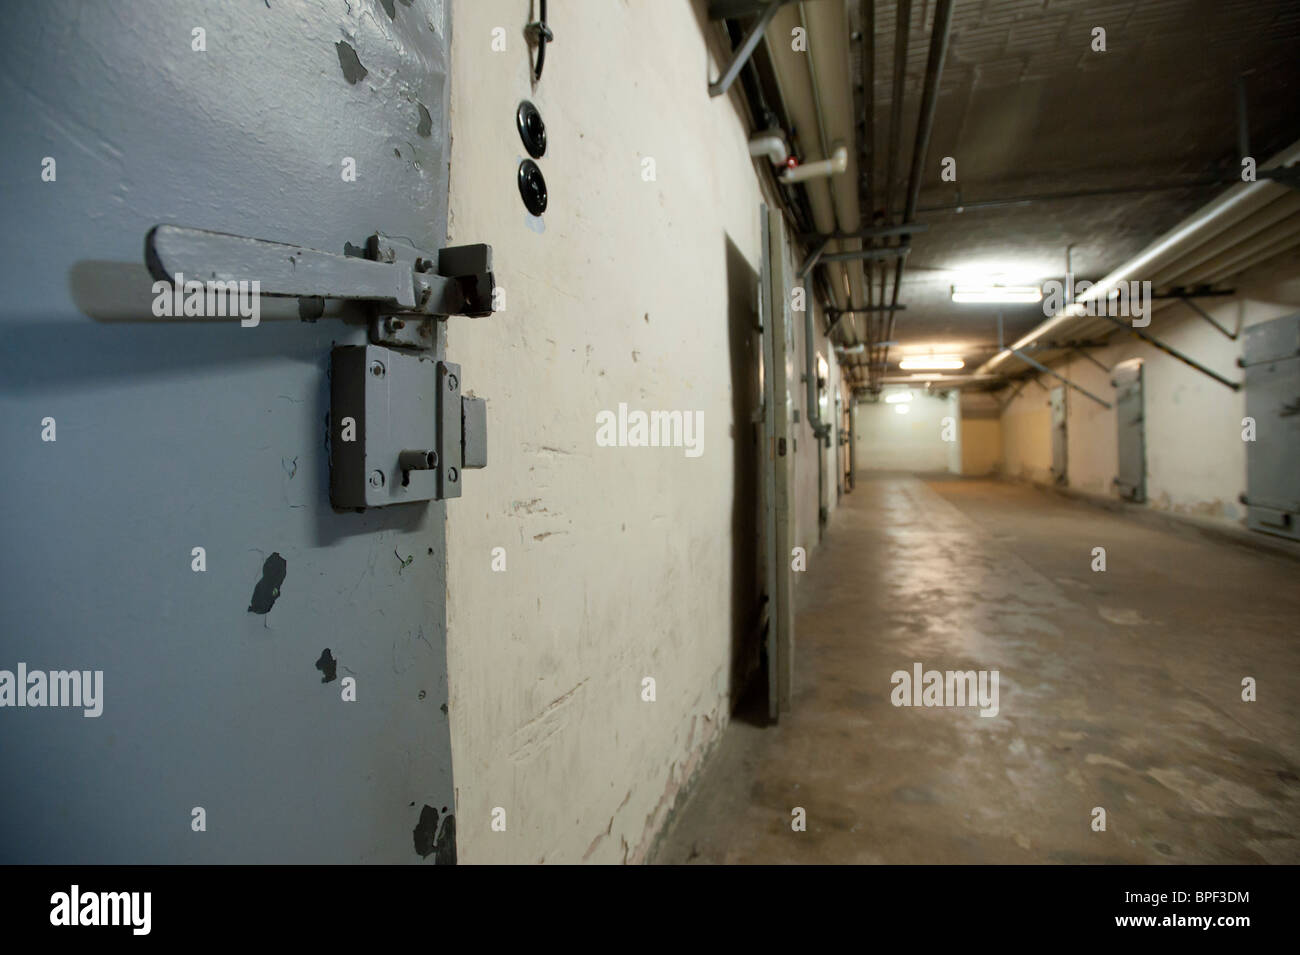 Underground cells in U-boat bunker at state secret security police or STASI prison at Hohenschönhausen in Berlin - Stock Image